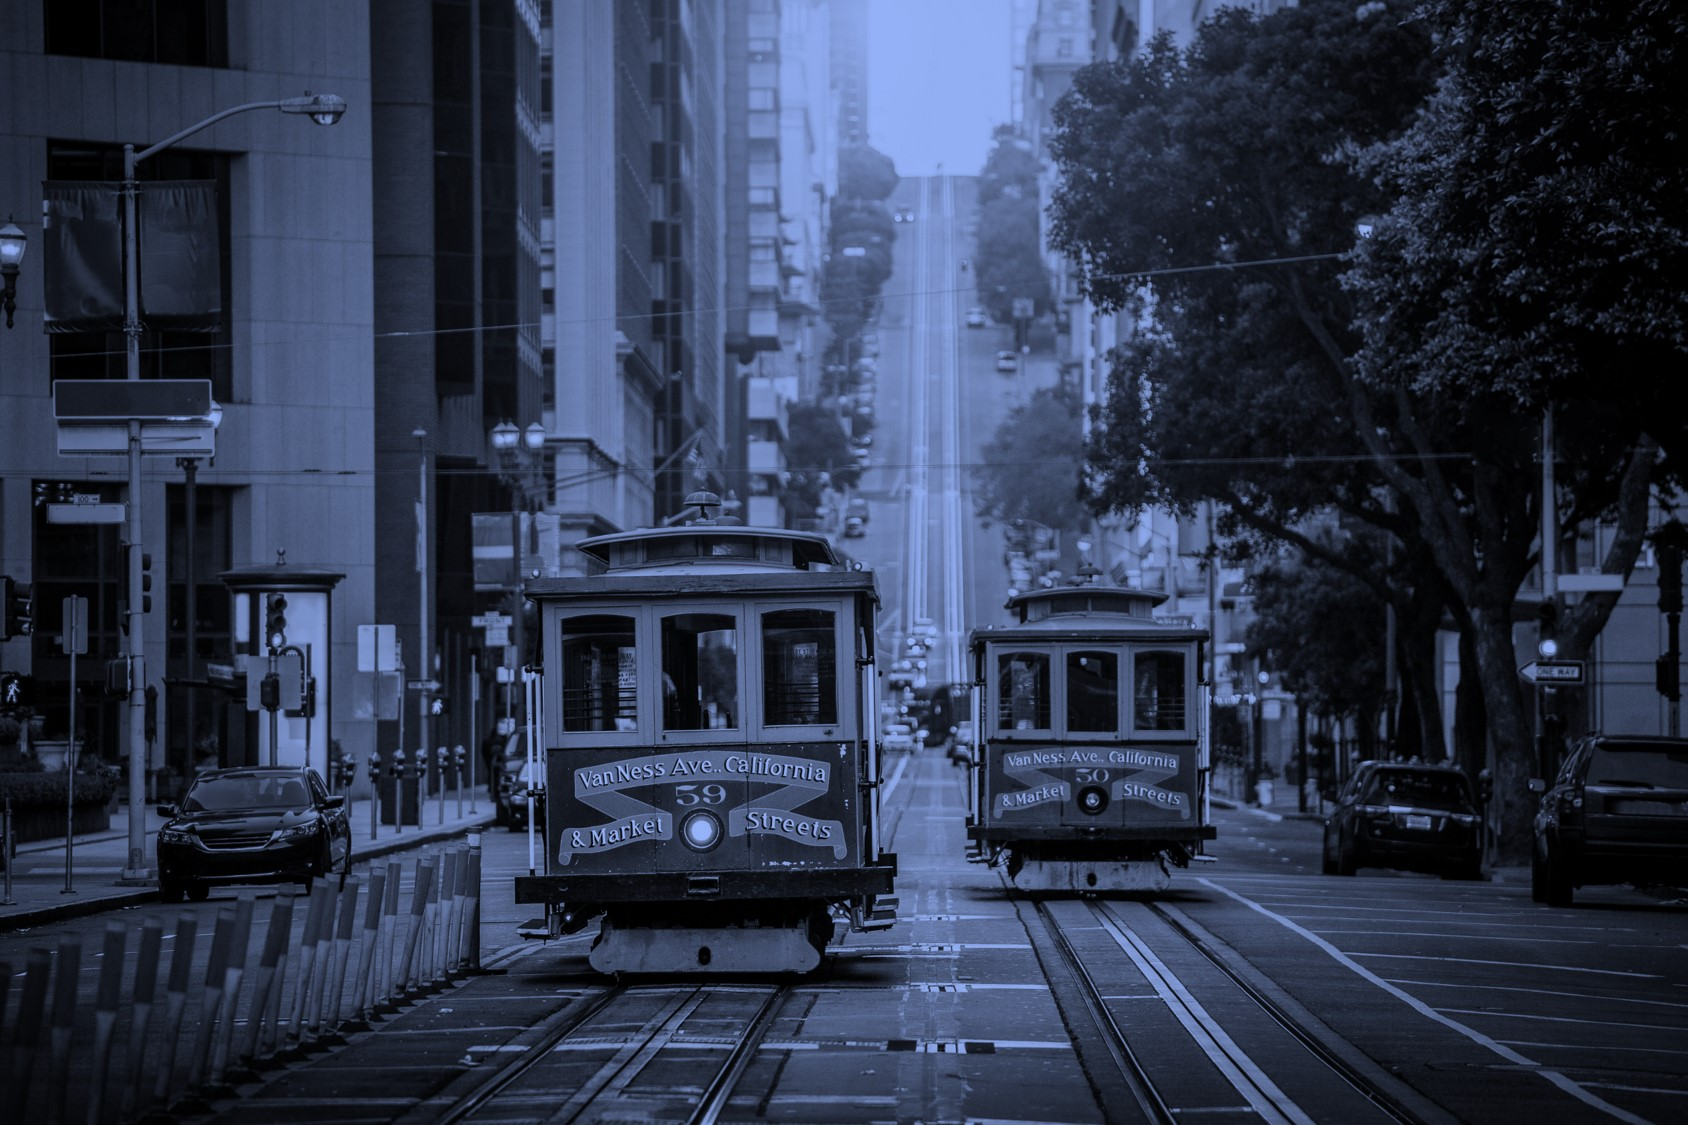 SF Cablecars